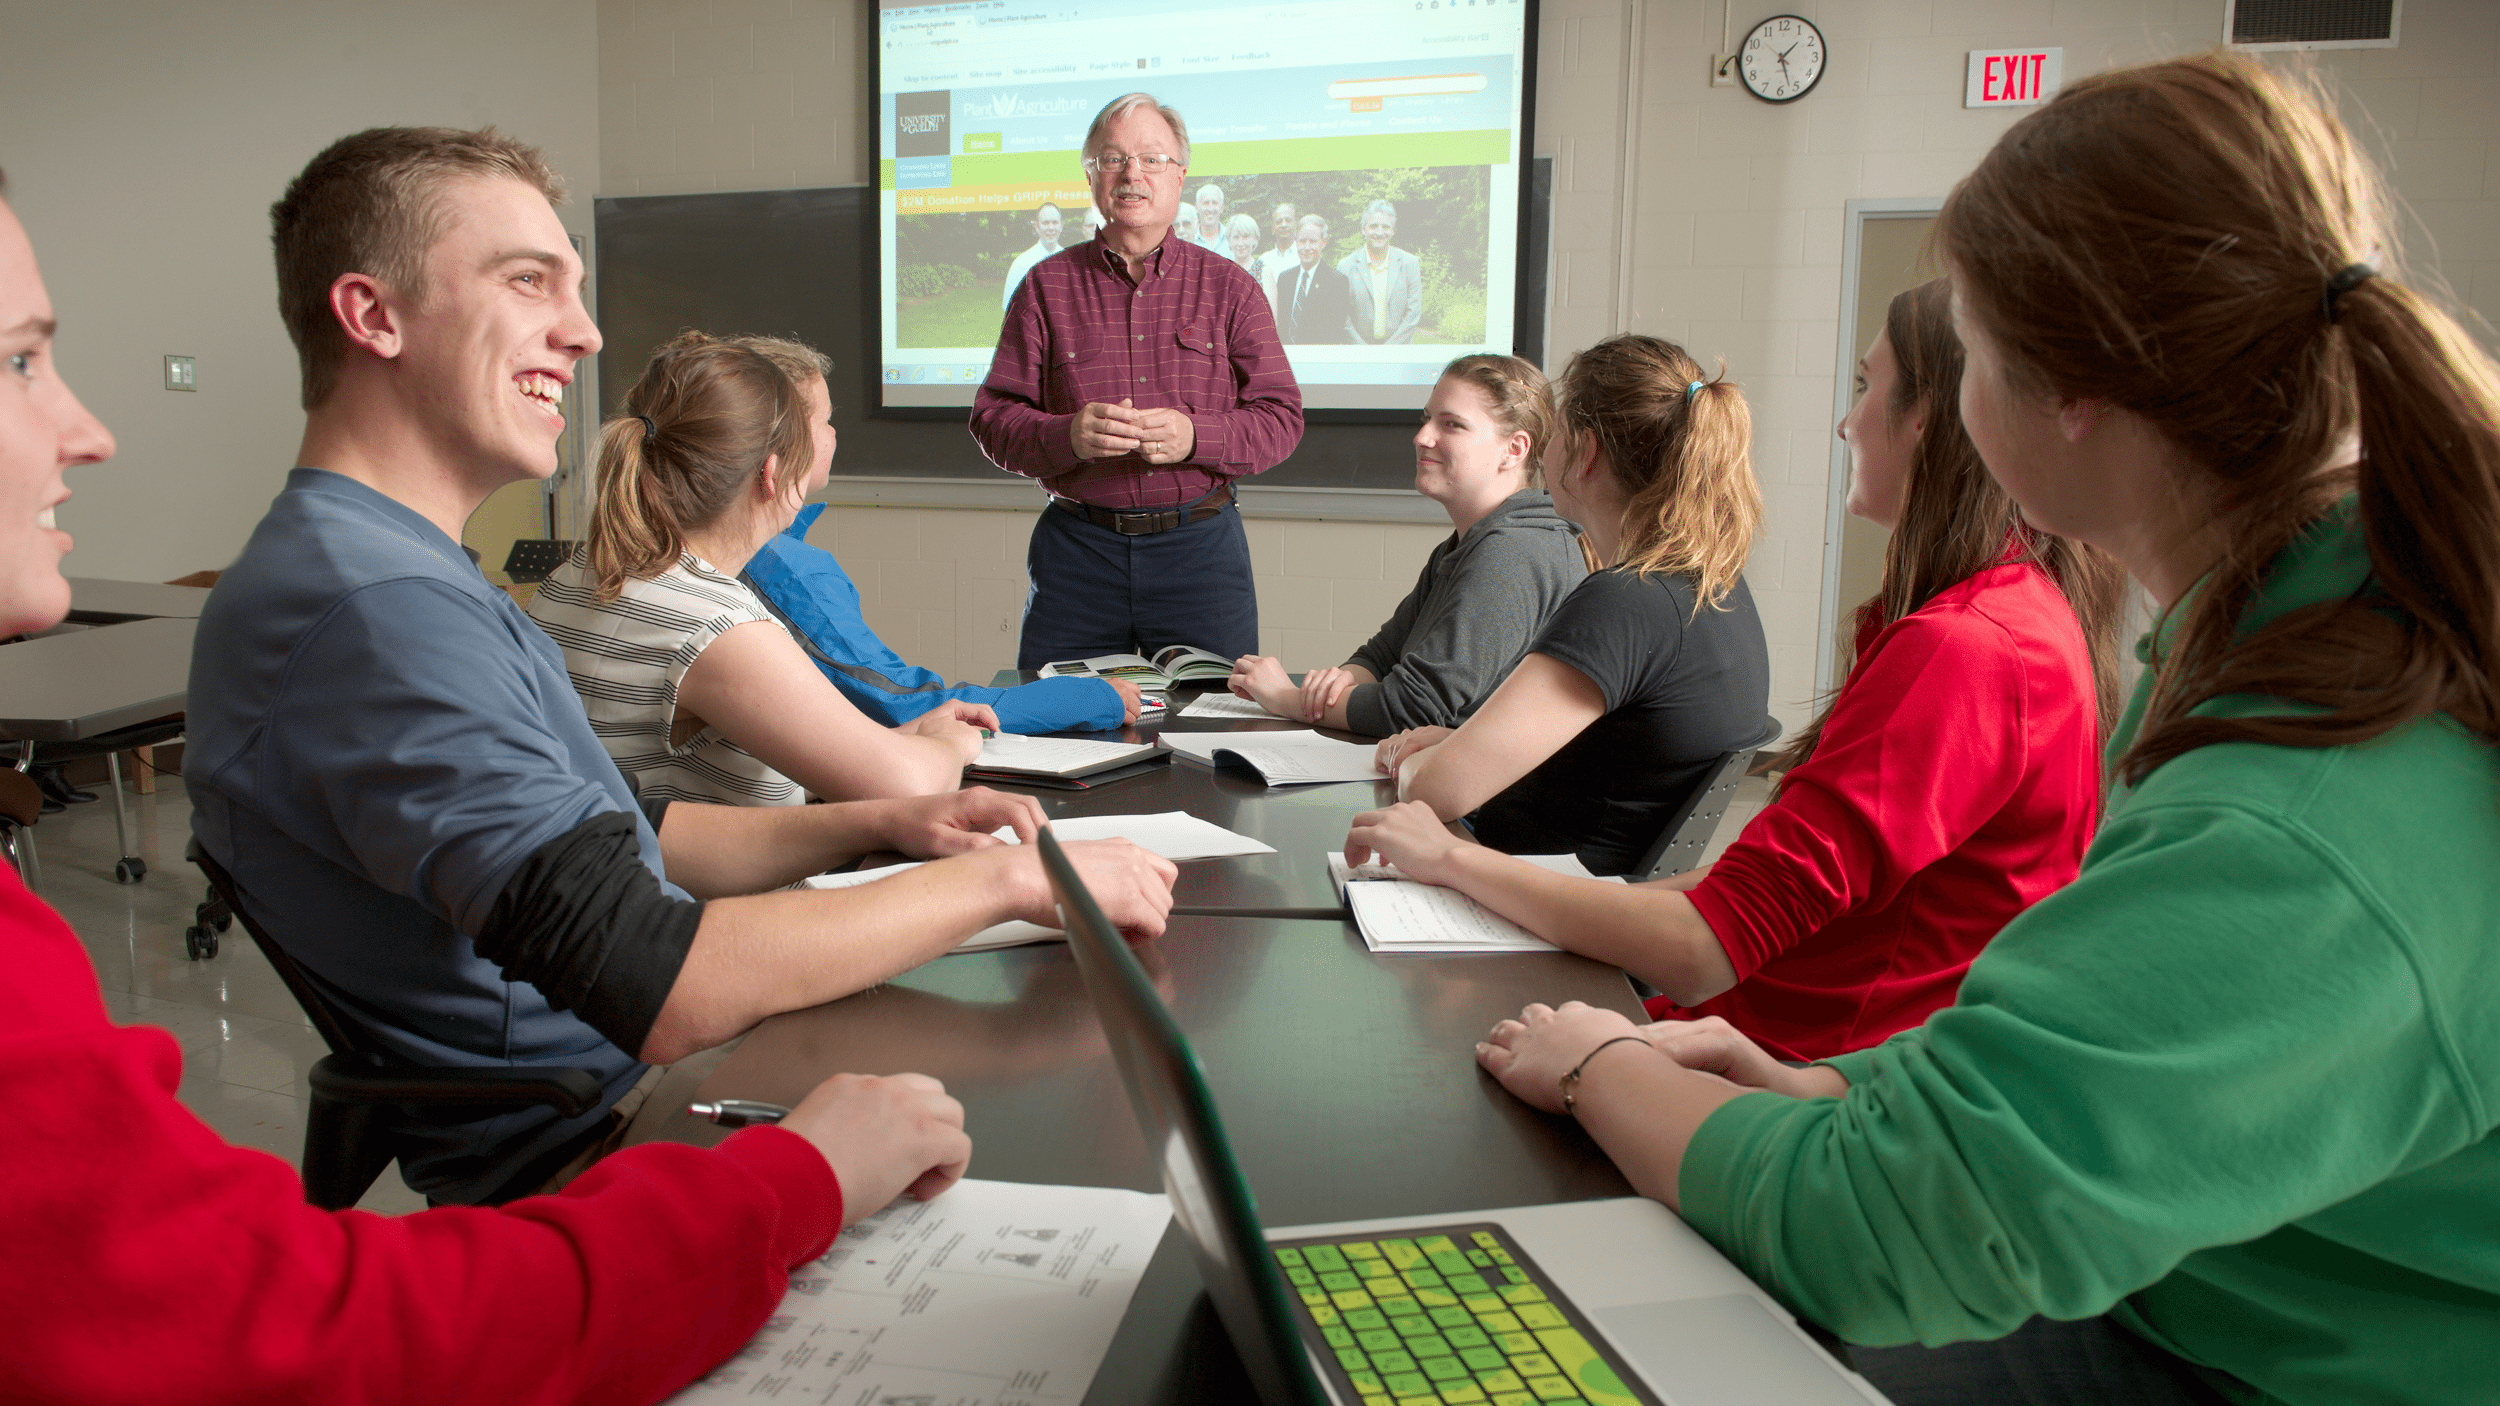 Students sit at a table listening to professor, with a website projected on a screen behind him